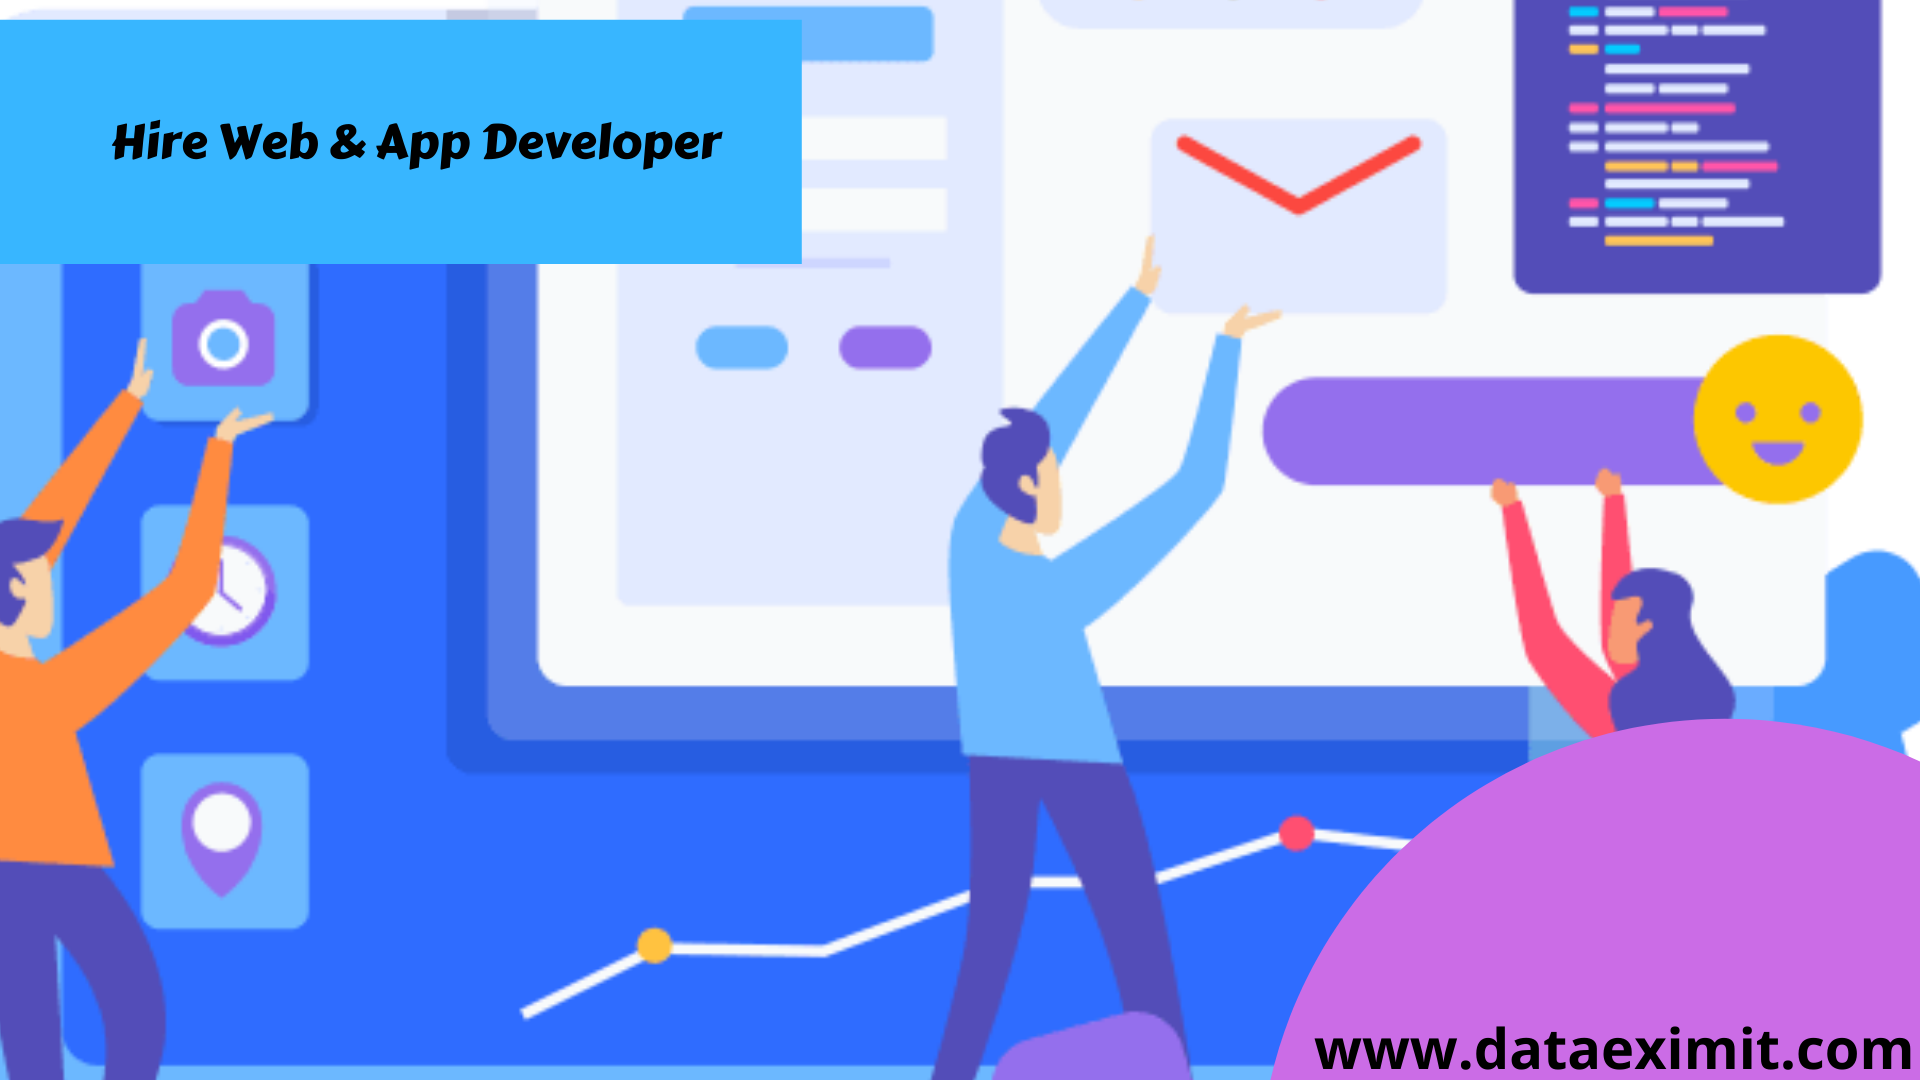 Hire Web & App Developer